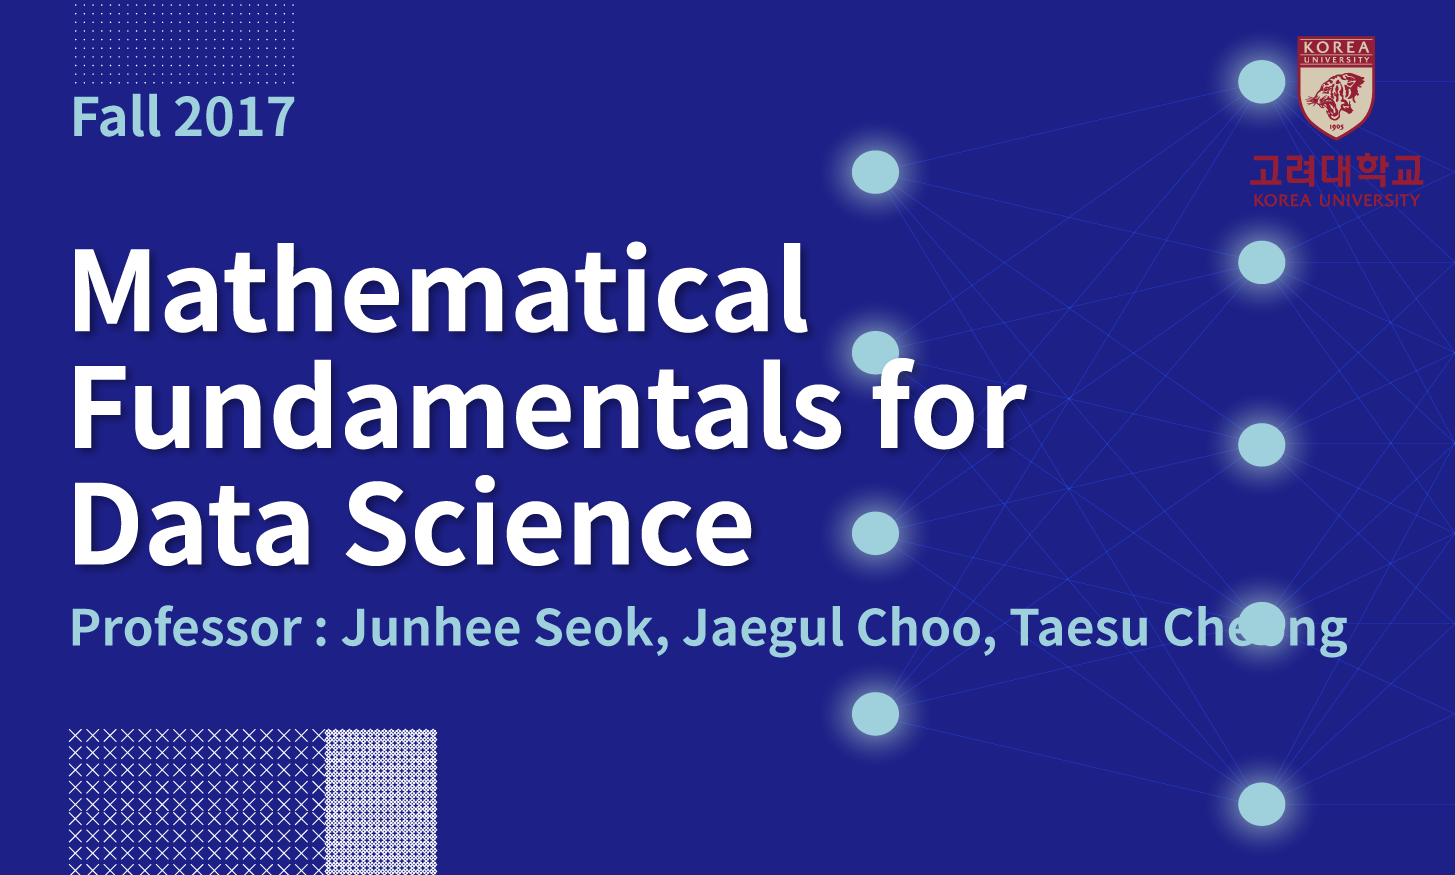 Mathematical Fundamentals for Data Science ku_eng_002